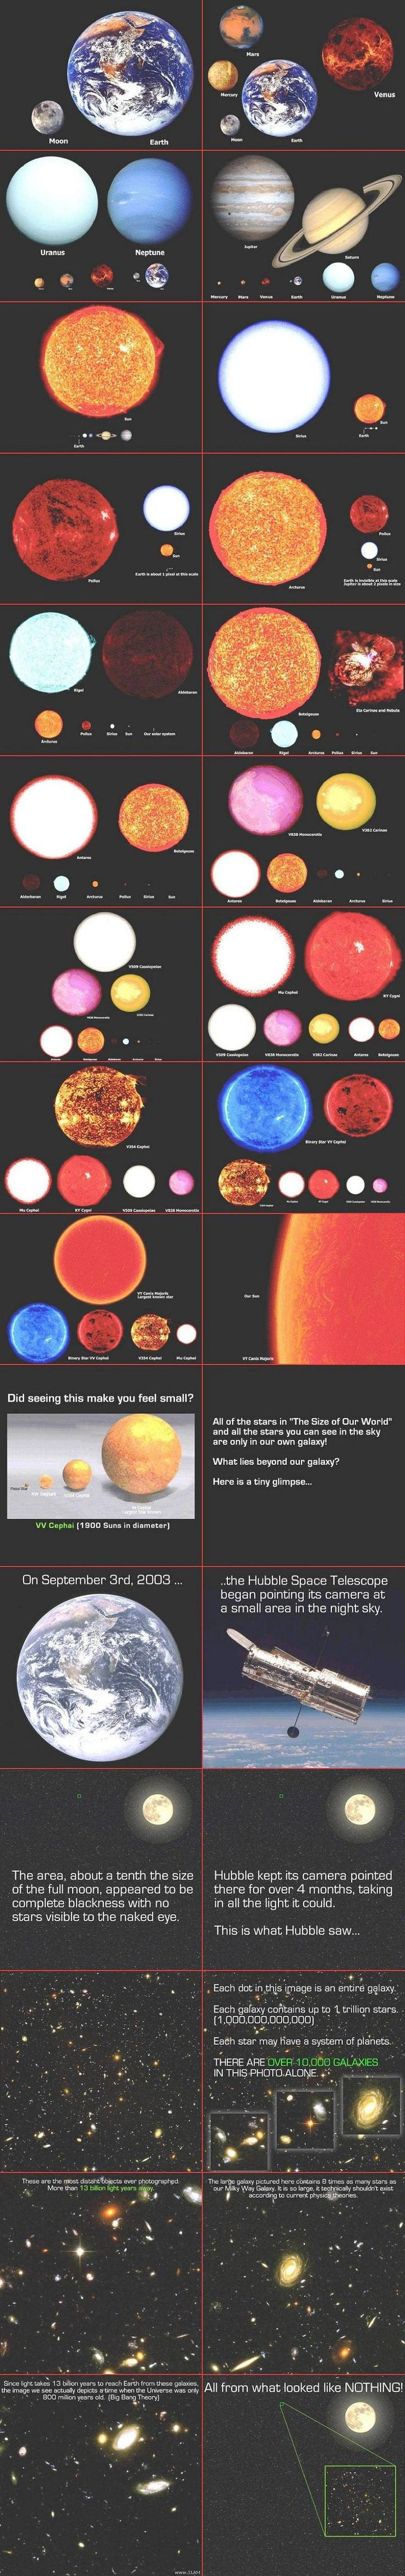 A lesson in scale...really gives you a new perspective. I can't even digest this information- mind-blowing!